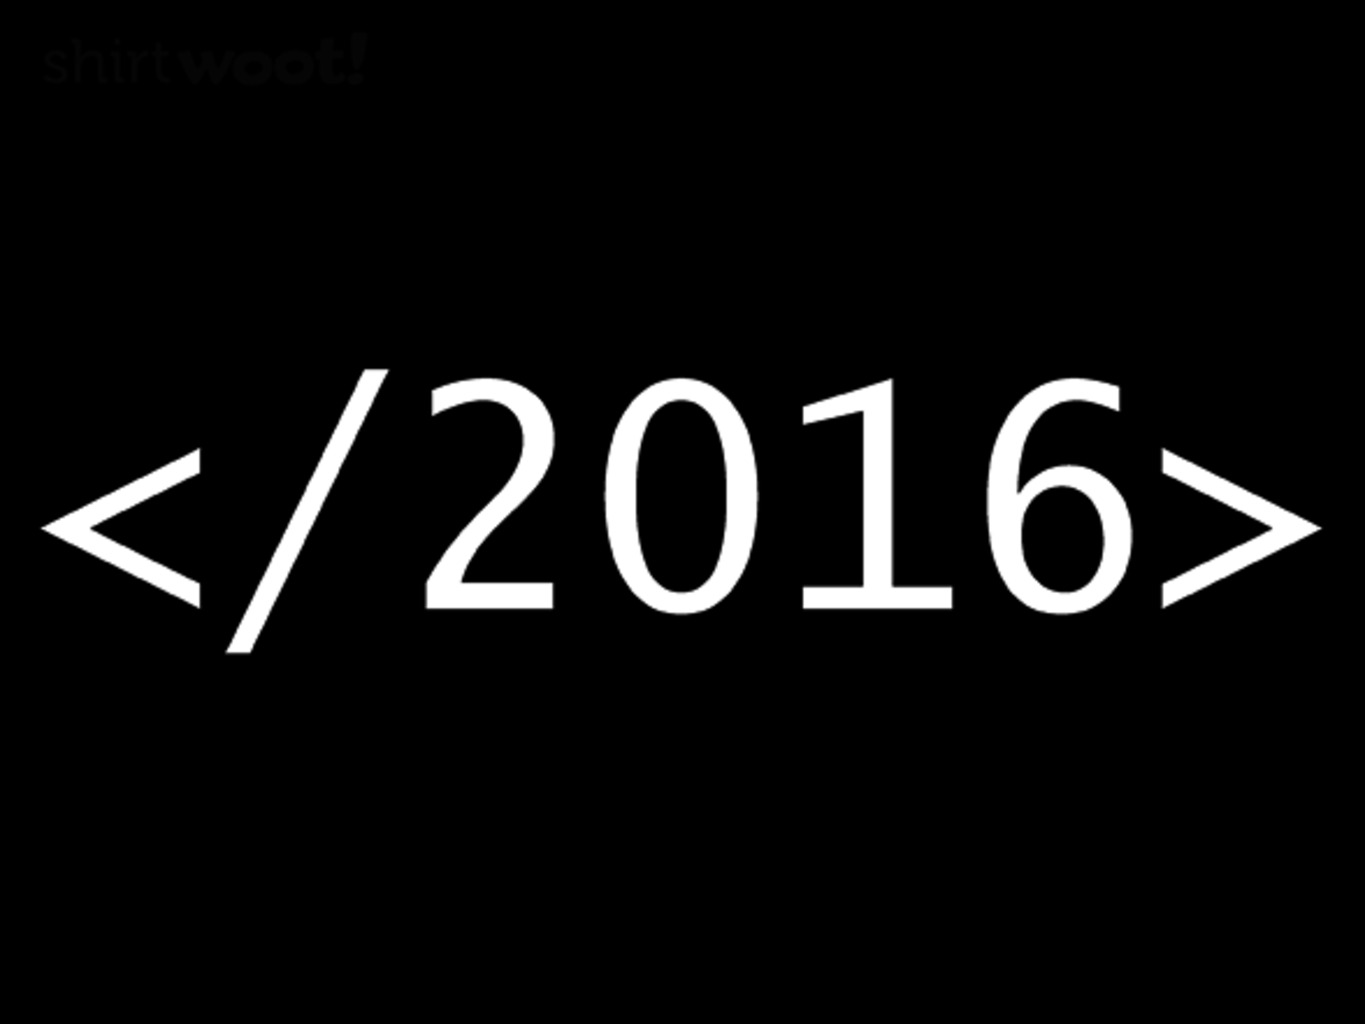 Woot!: End 2016